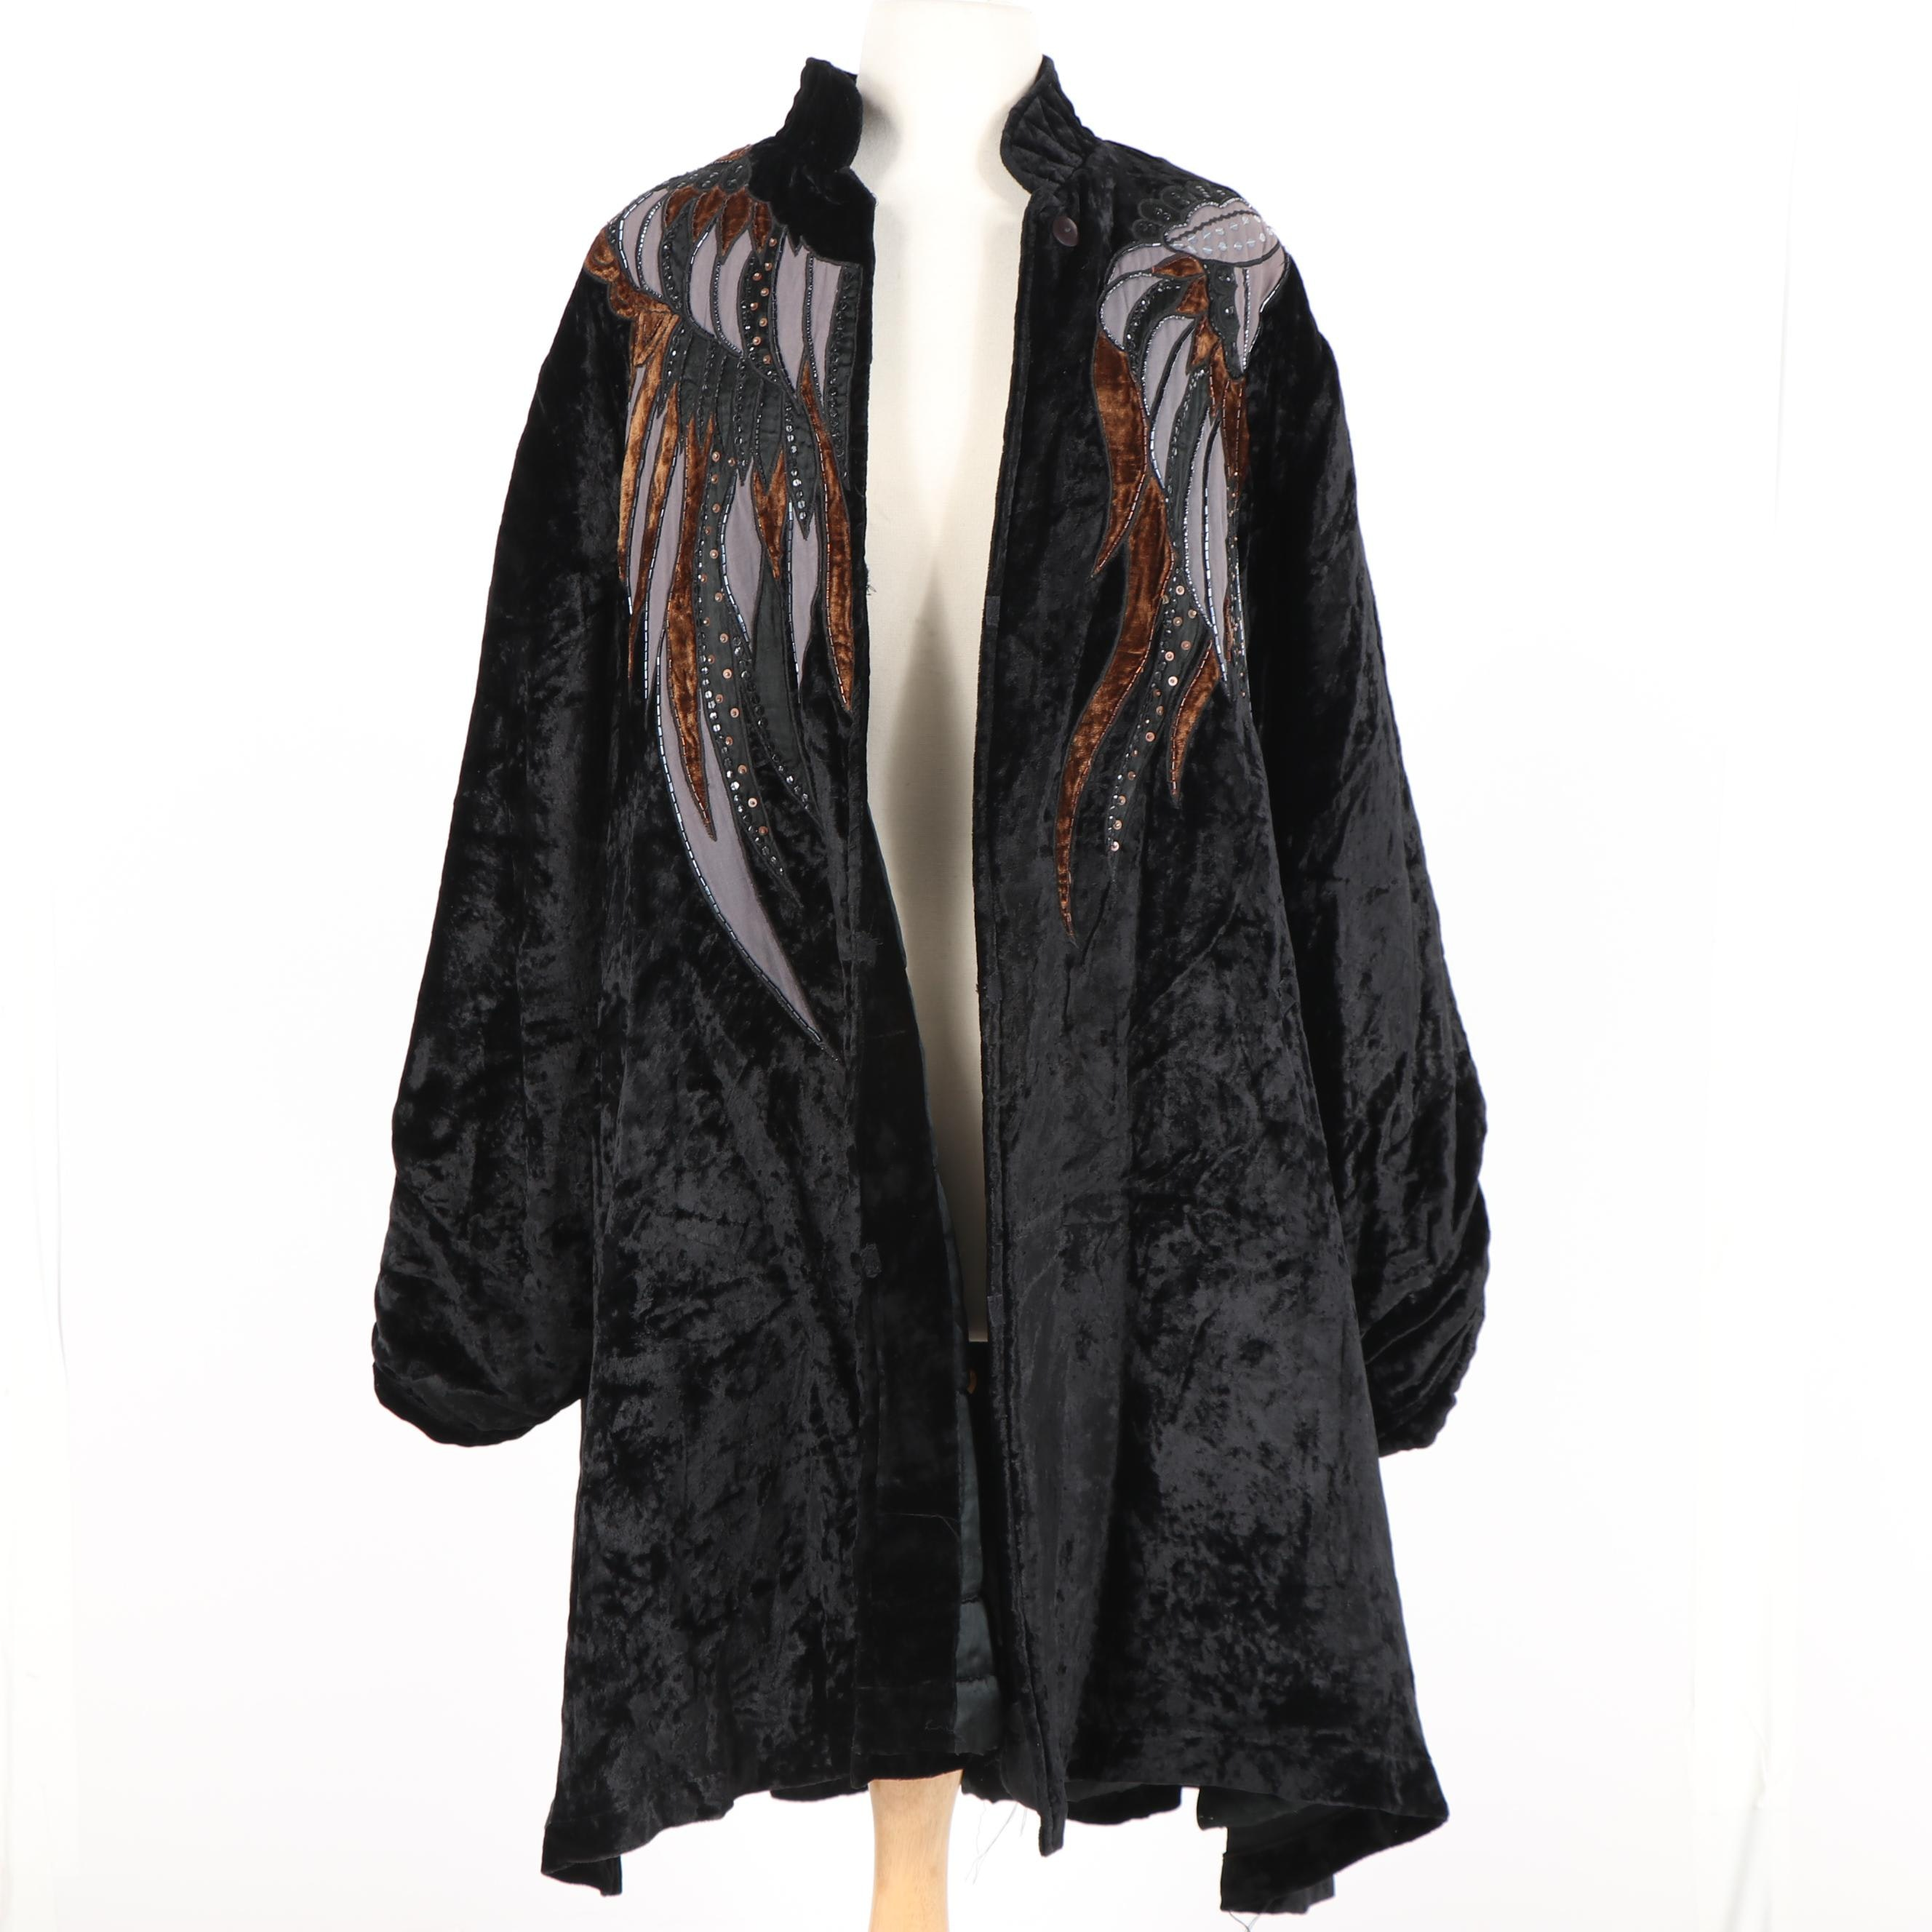 Women's JA Resort Embellished Black Crushed Velour Swing Coat